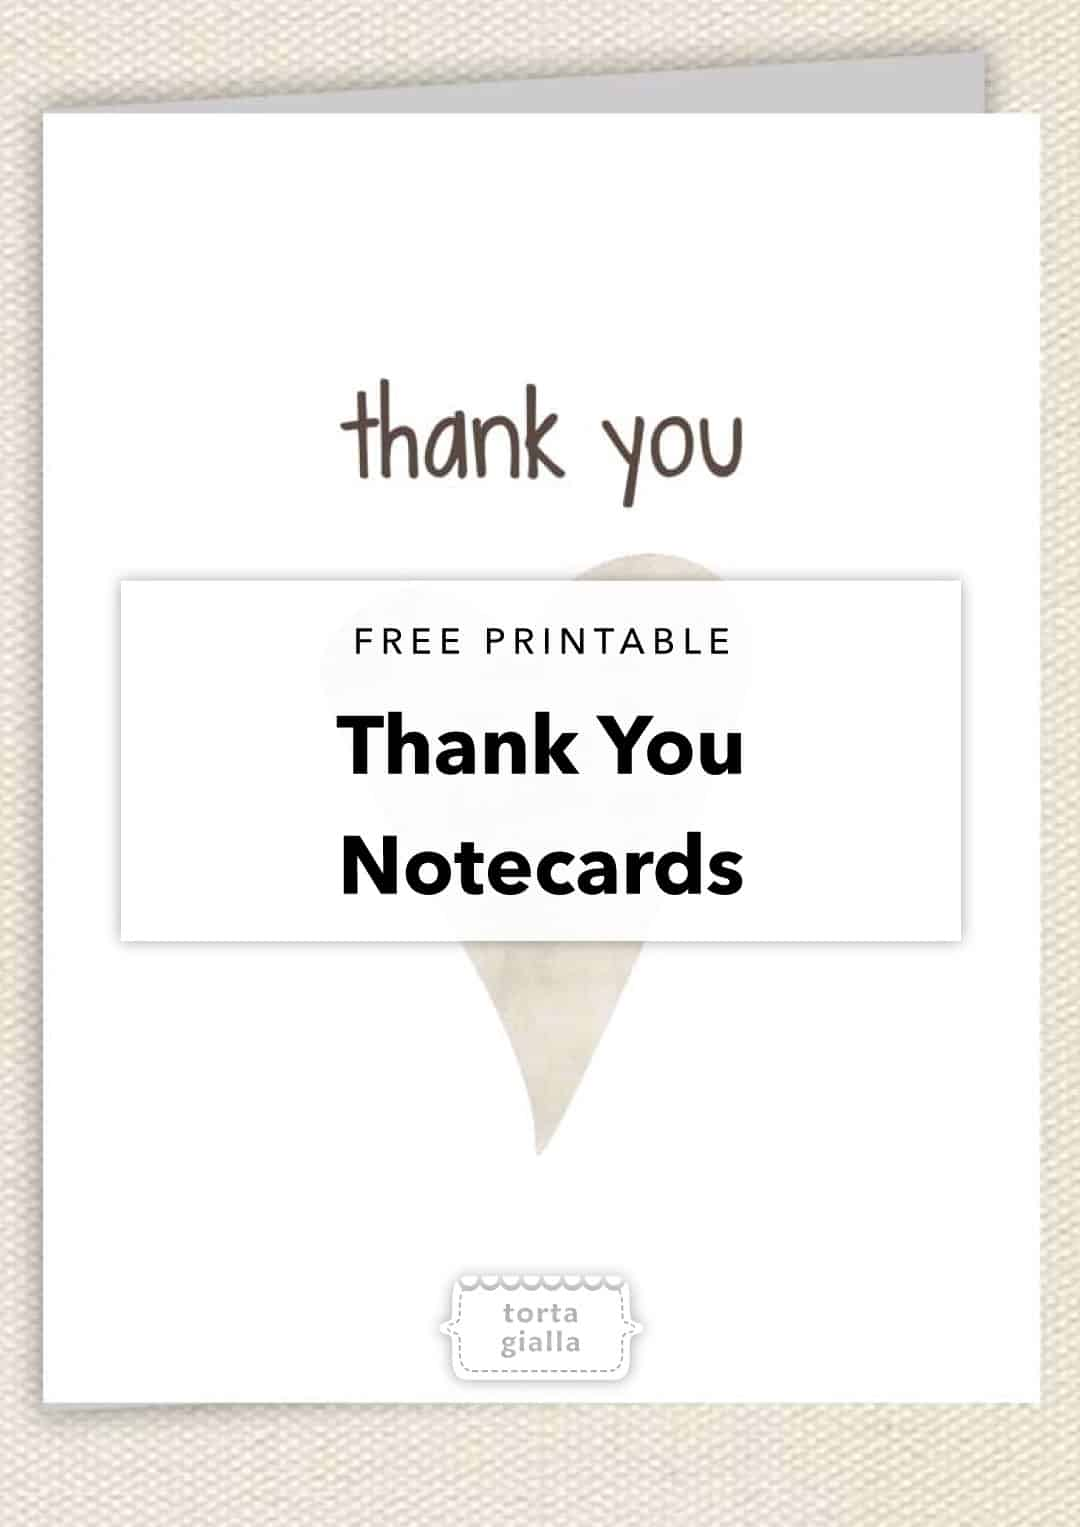 free printable thank you notecards